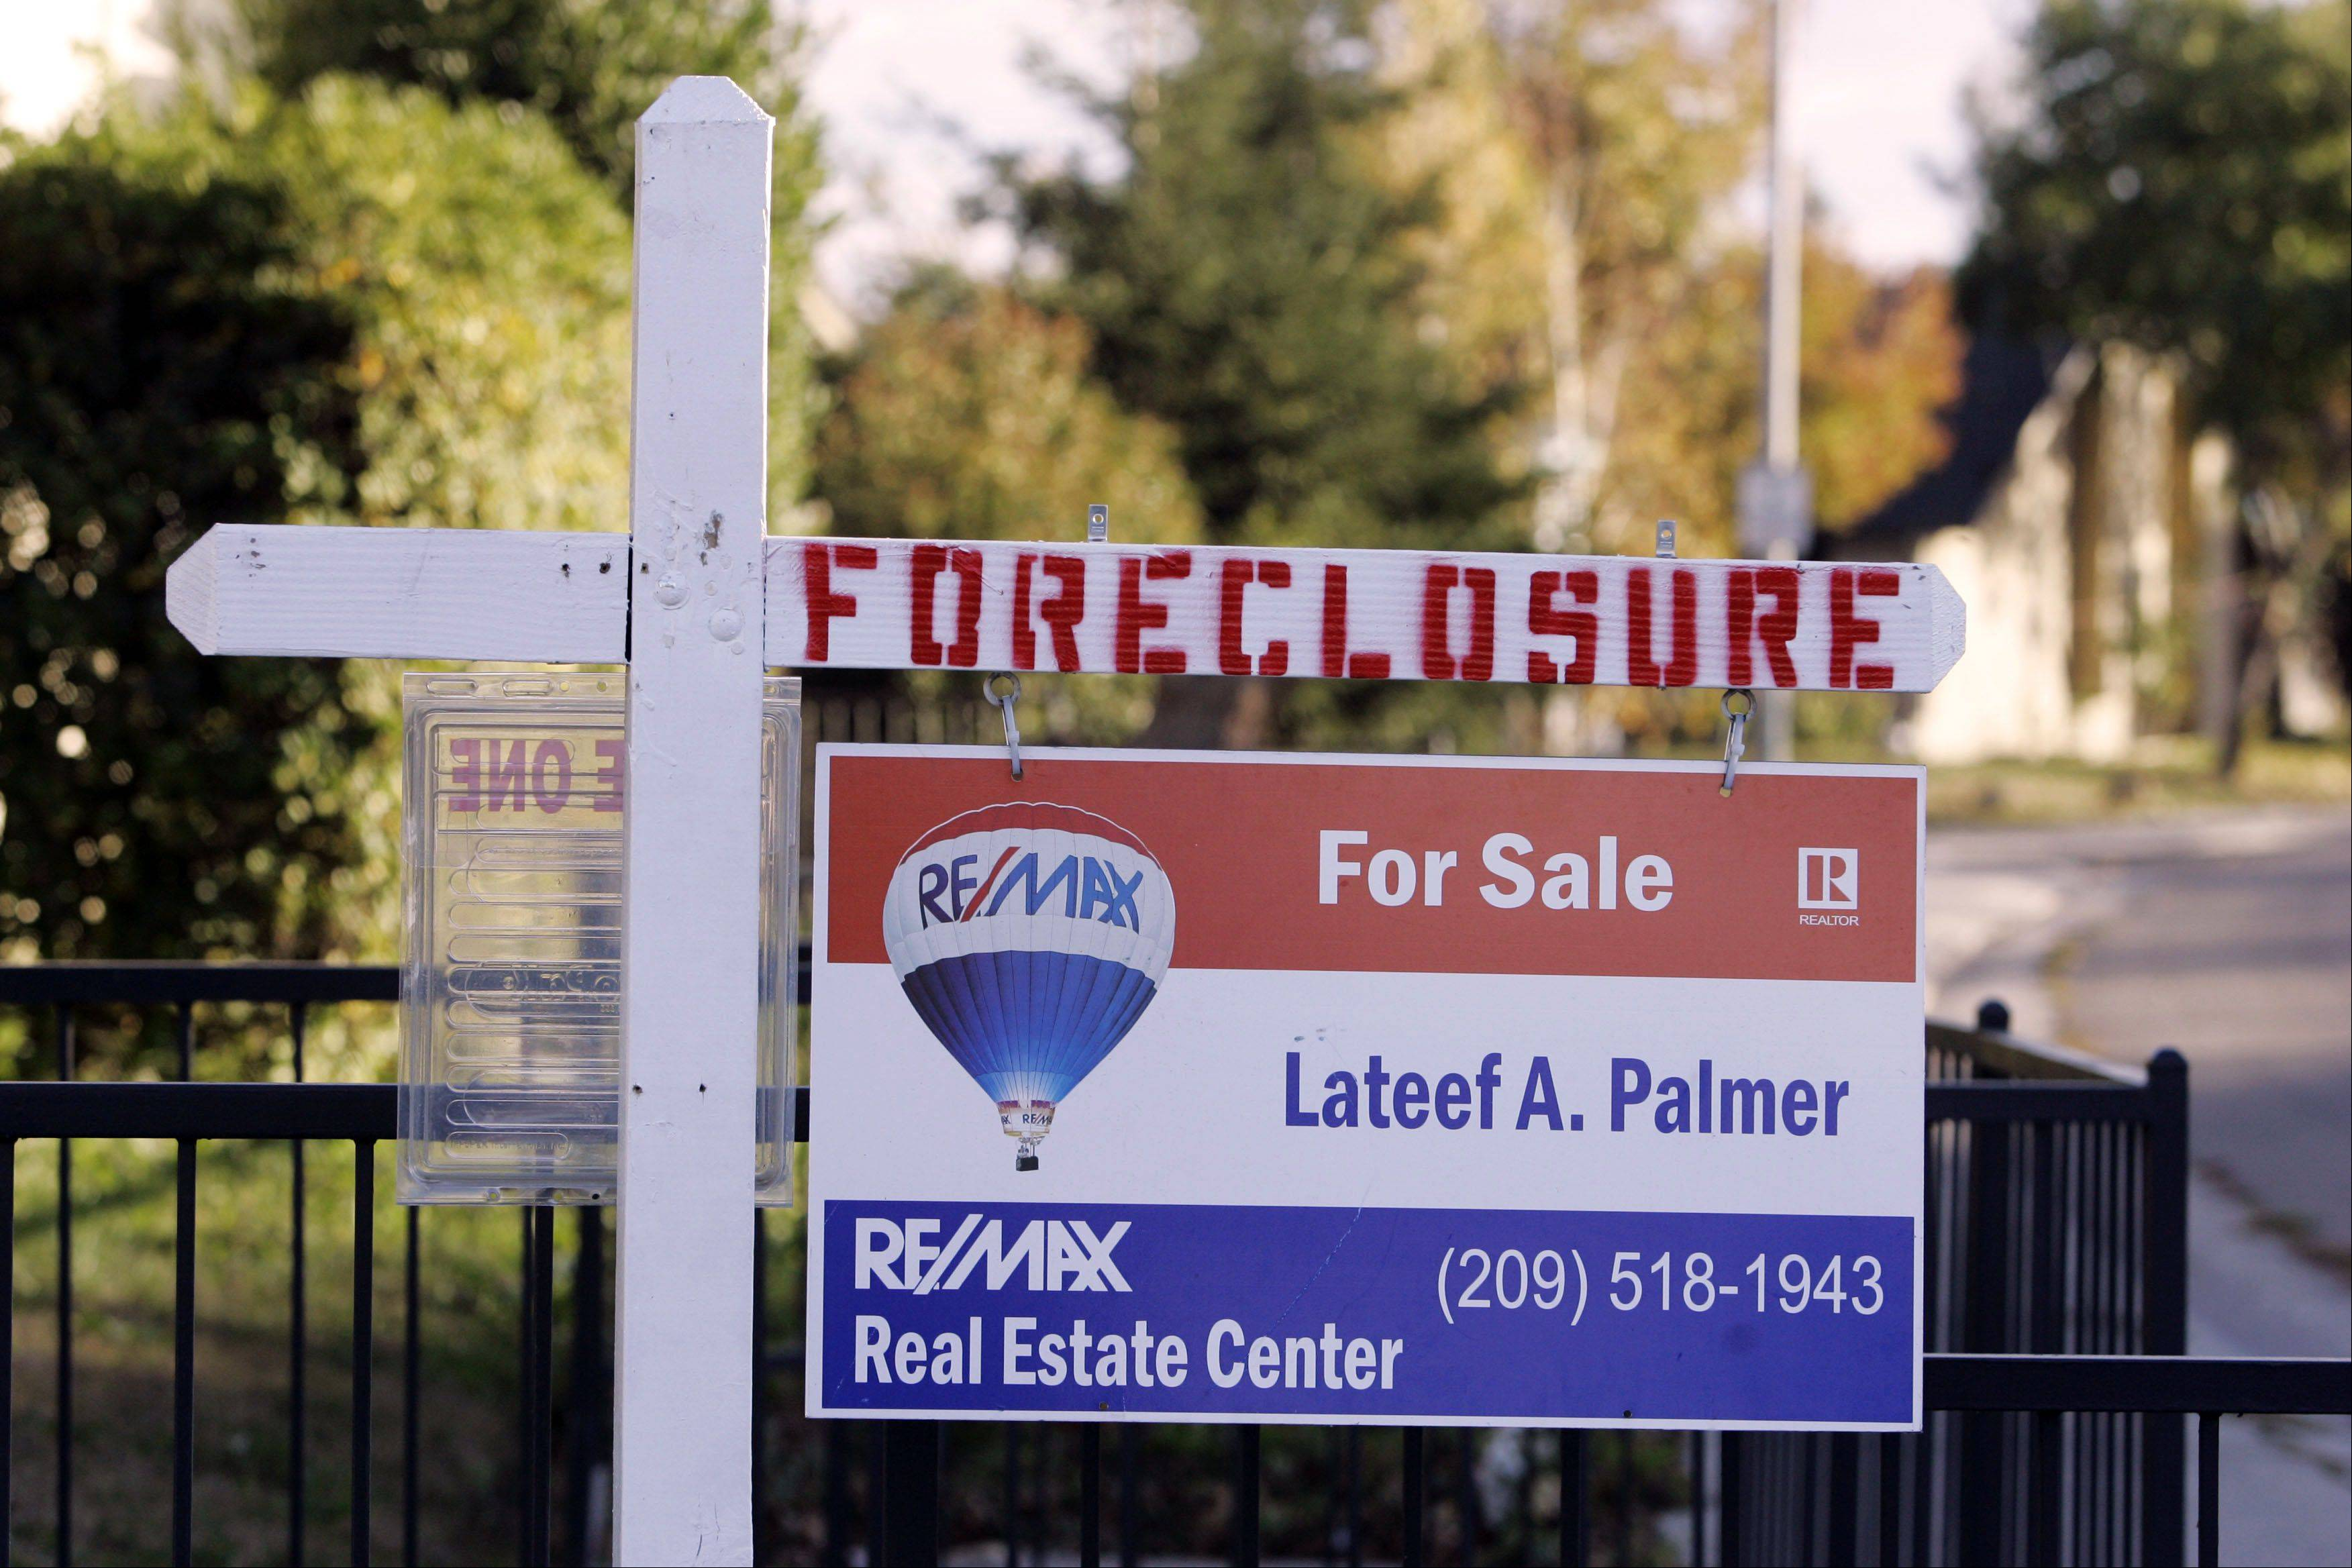 Fewer U.S. homes entered the foreclosure process or were repossessed by banks in June, the latest sign that the nation is shaking off its housing bust hangover.